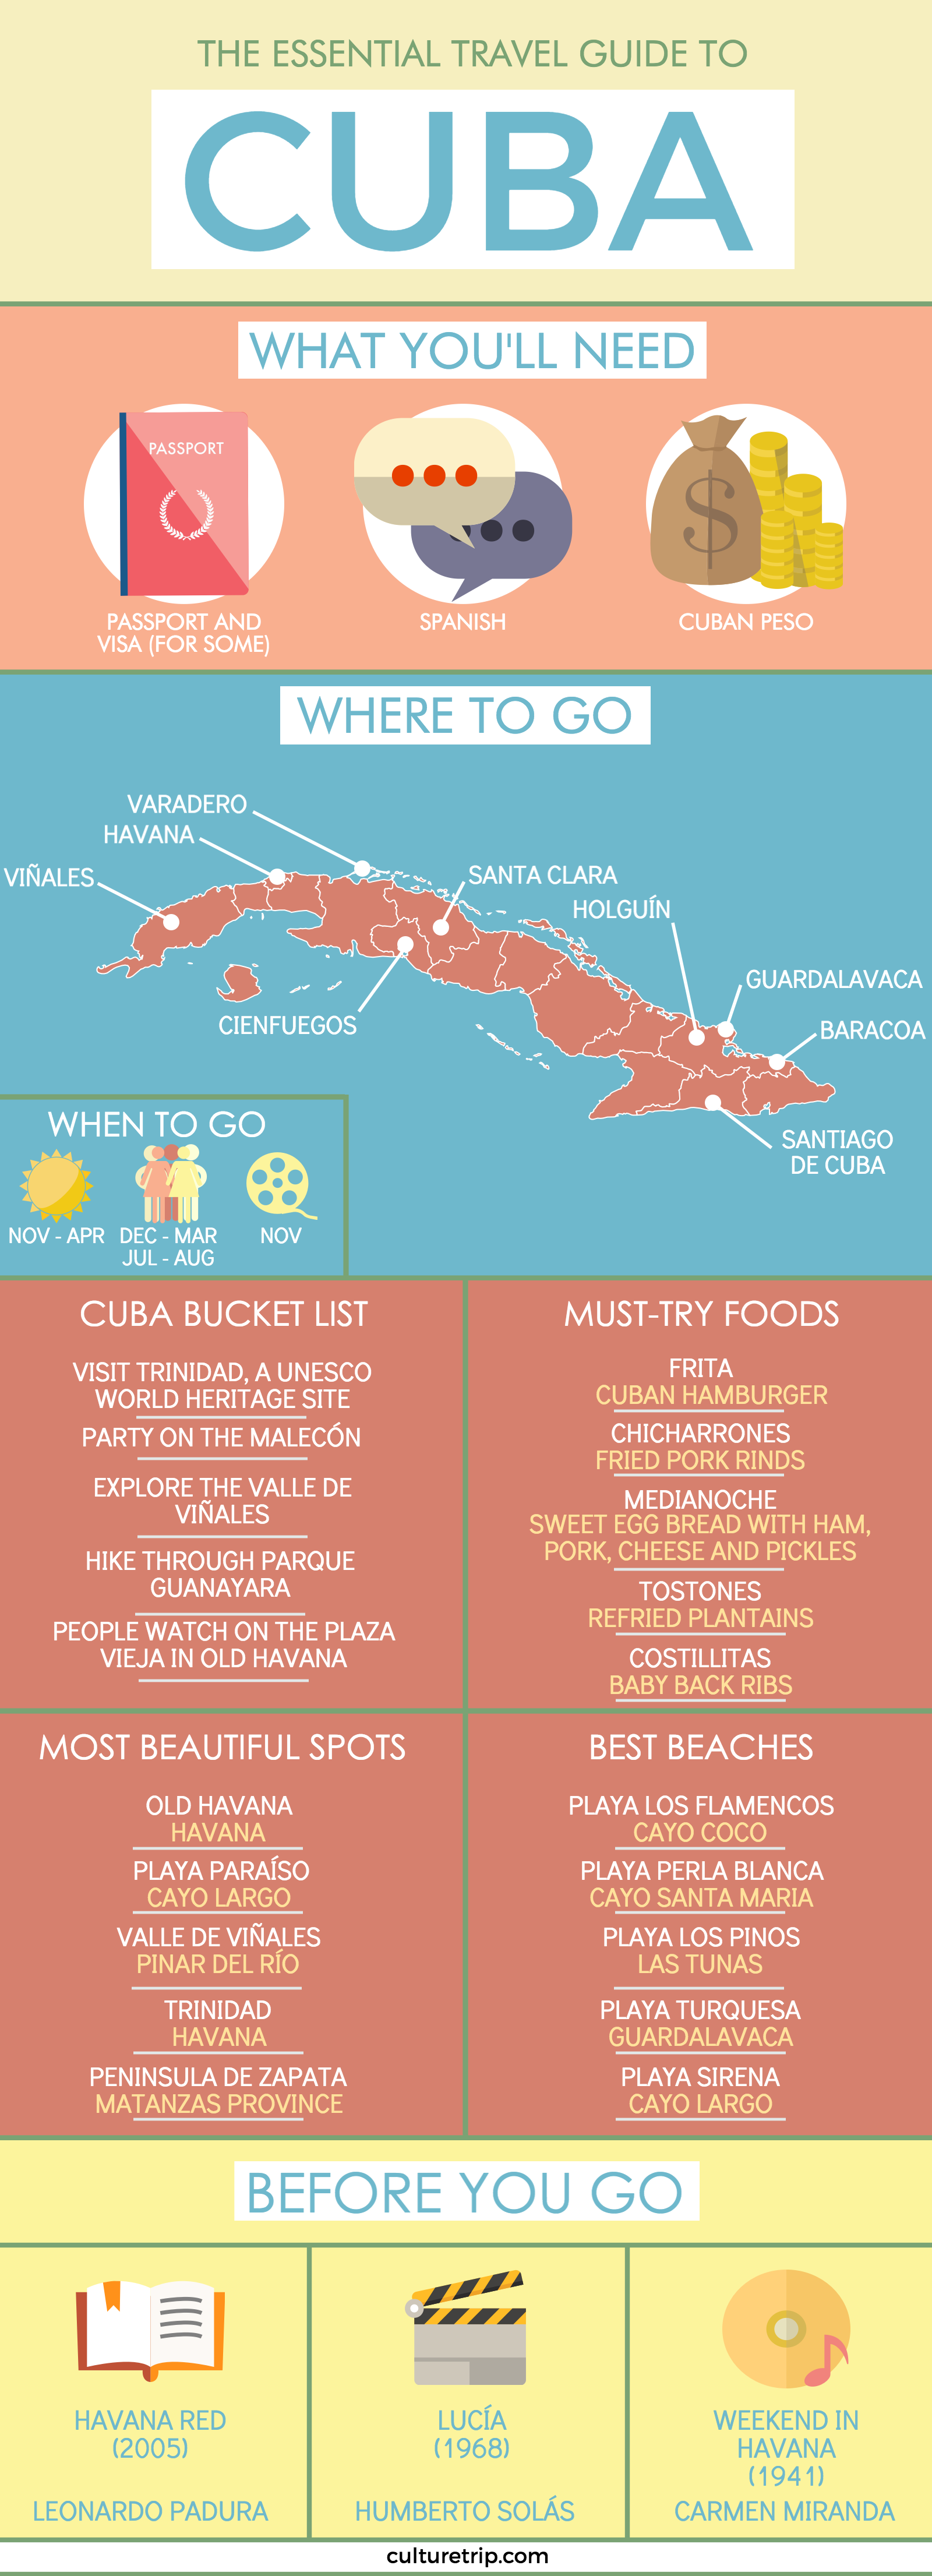 The essential travel guide to Cuba, including food, travel, culture, and what you'll need for your trip.